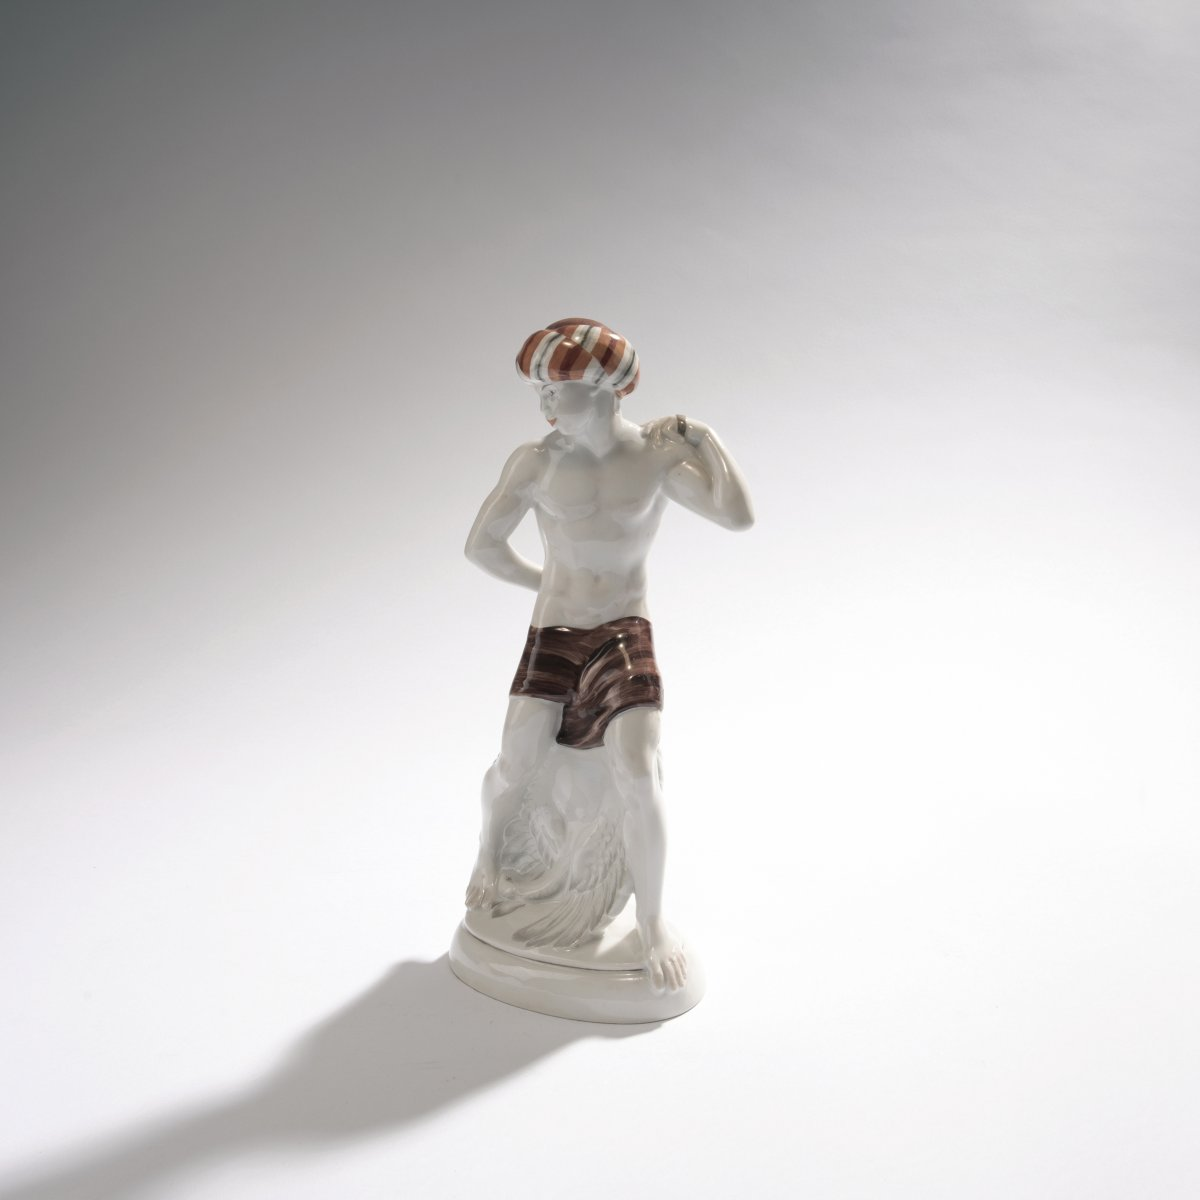 Lot 46 - Adolph Amberg, 'Indian', 1910'Indian', 1910H. 26,7 cm. Made by StPM Berlin, in 1920. Porcelain,